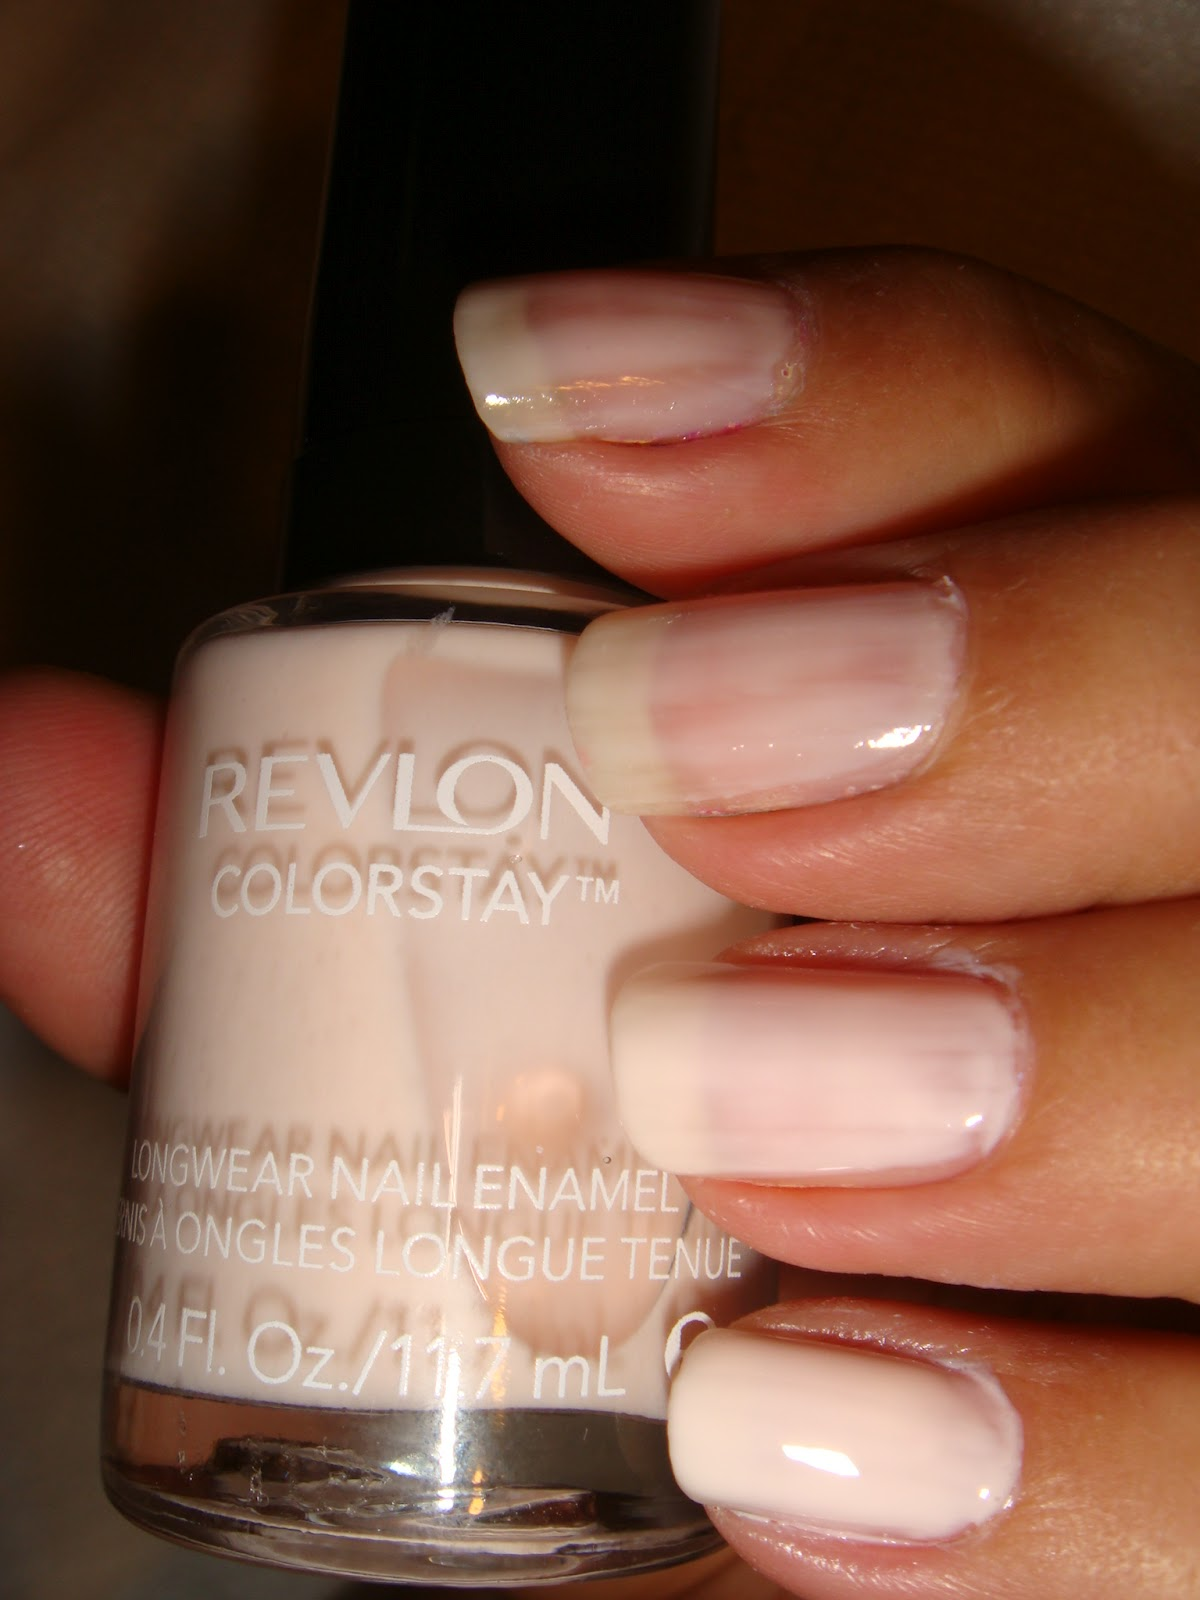 A Haul Lot about Beauty: My Favorite Nude Nail Polish Colors